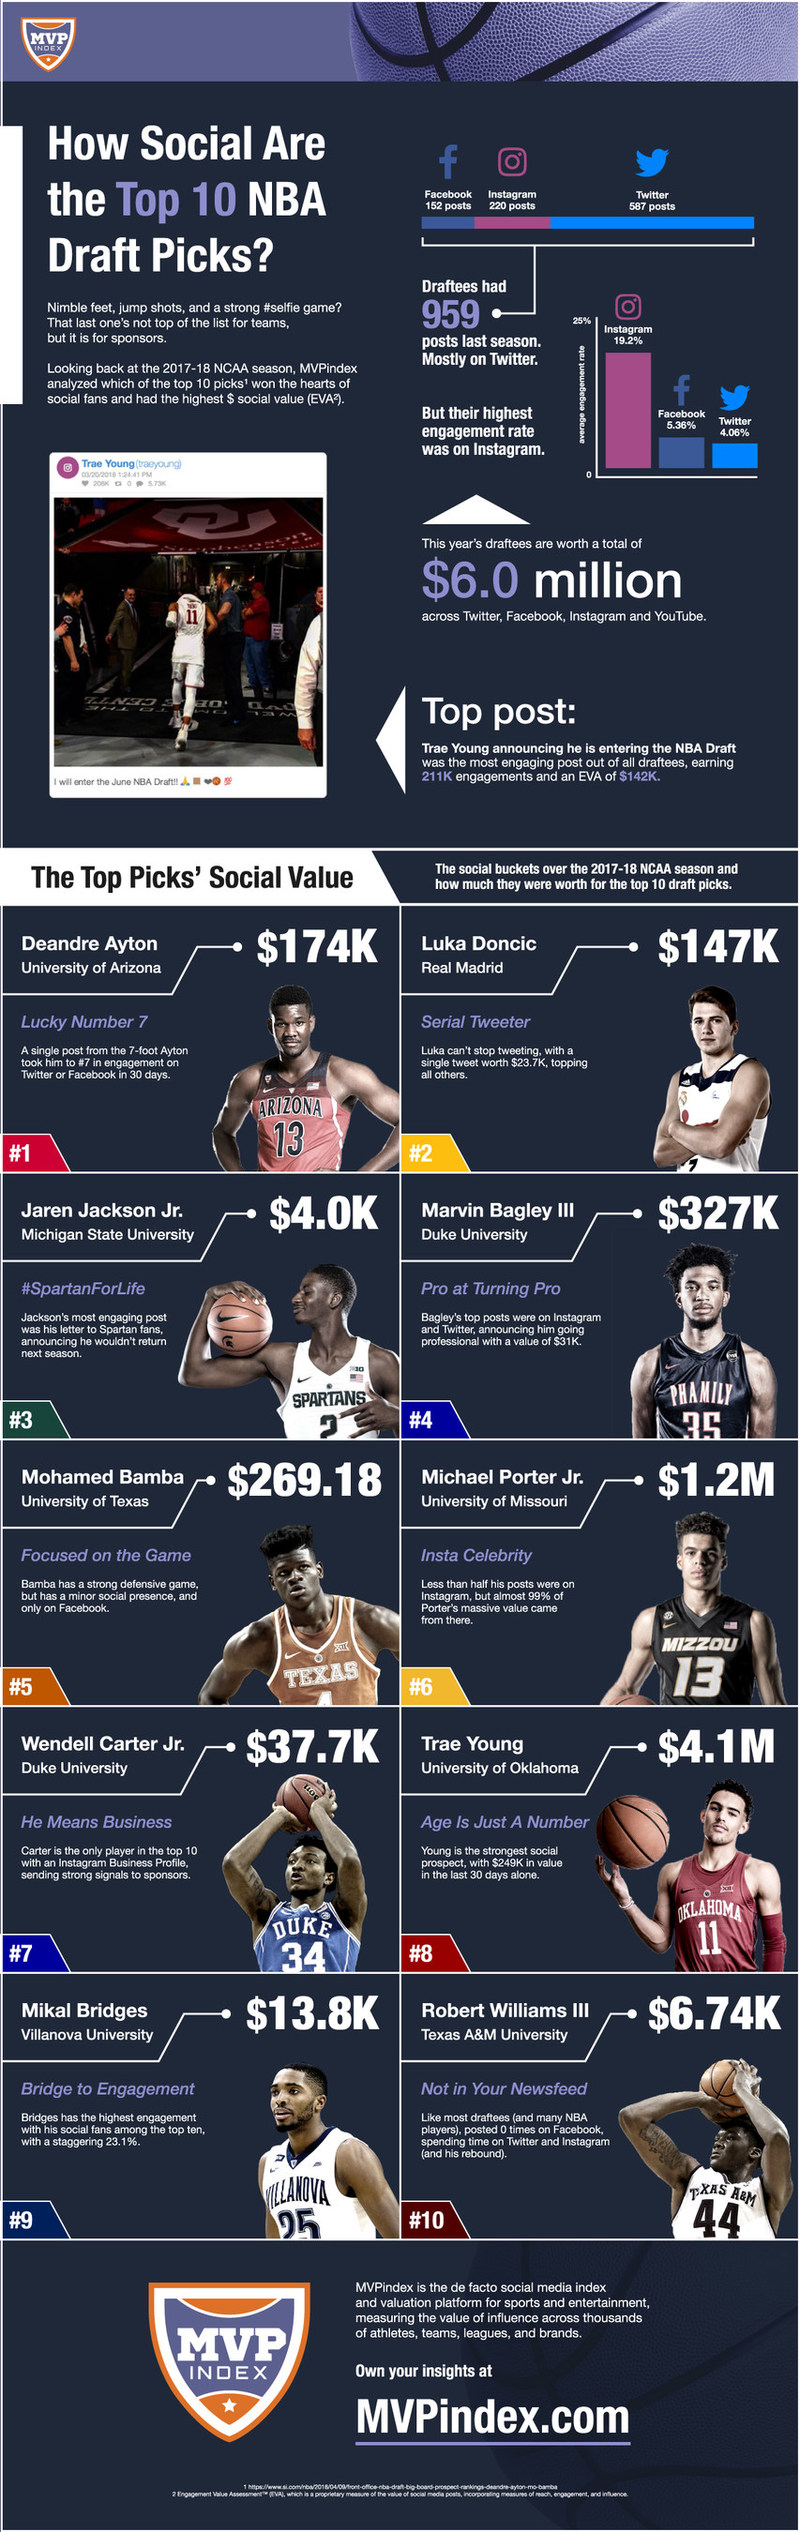 MVPindex takes a look at how the 2018 NBA Draft Class stacks up on social media.